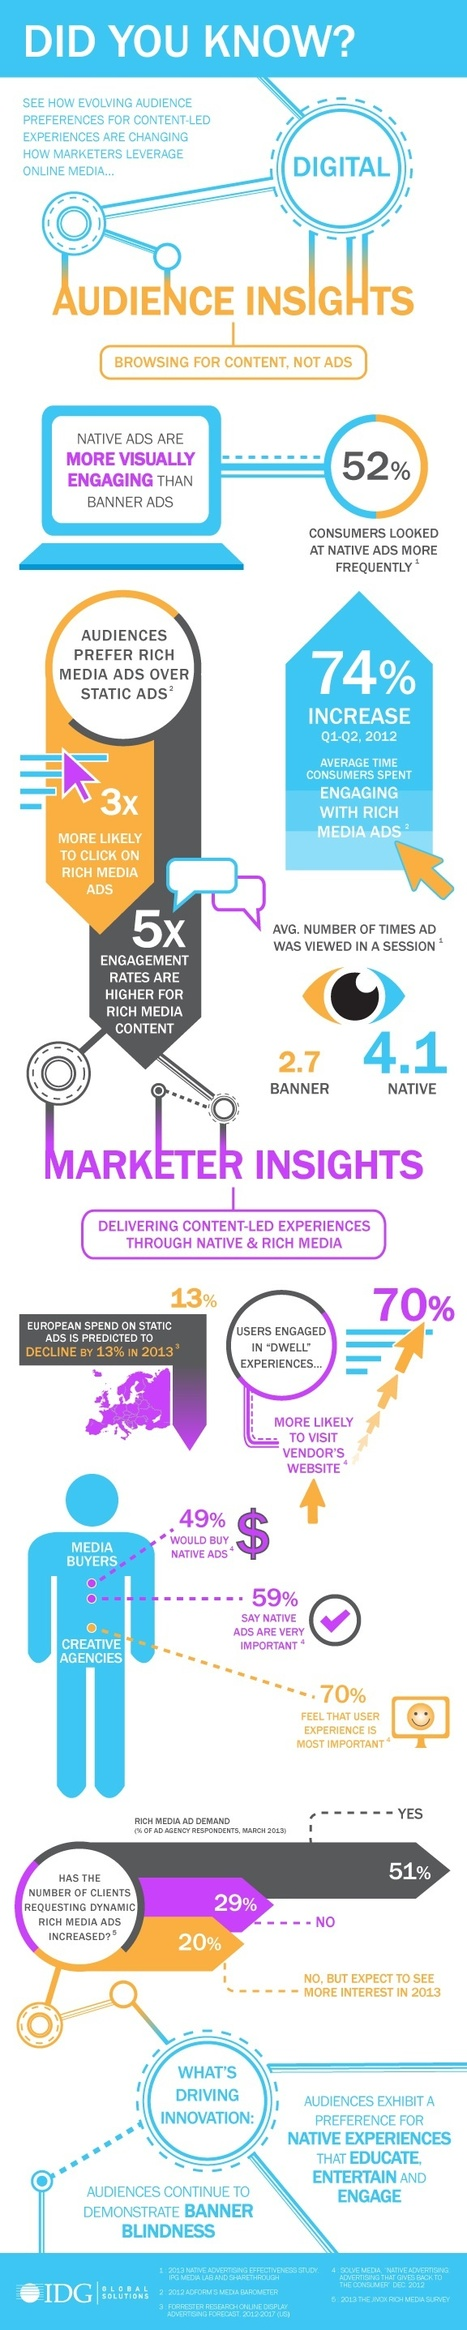 Audience and Marketer Insights on Digital Advertising [Infographic]   Social Media Marketing   Scoop.it